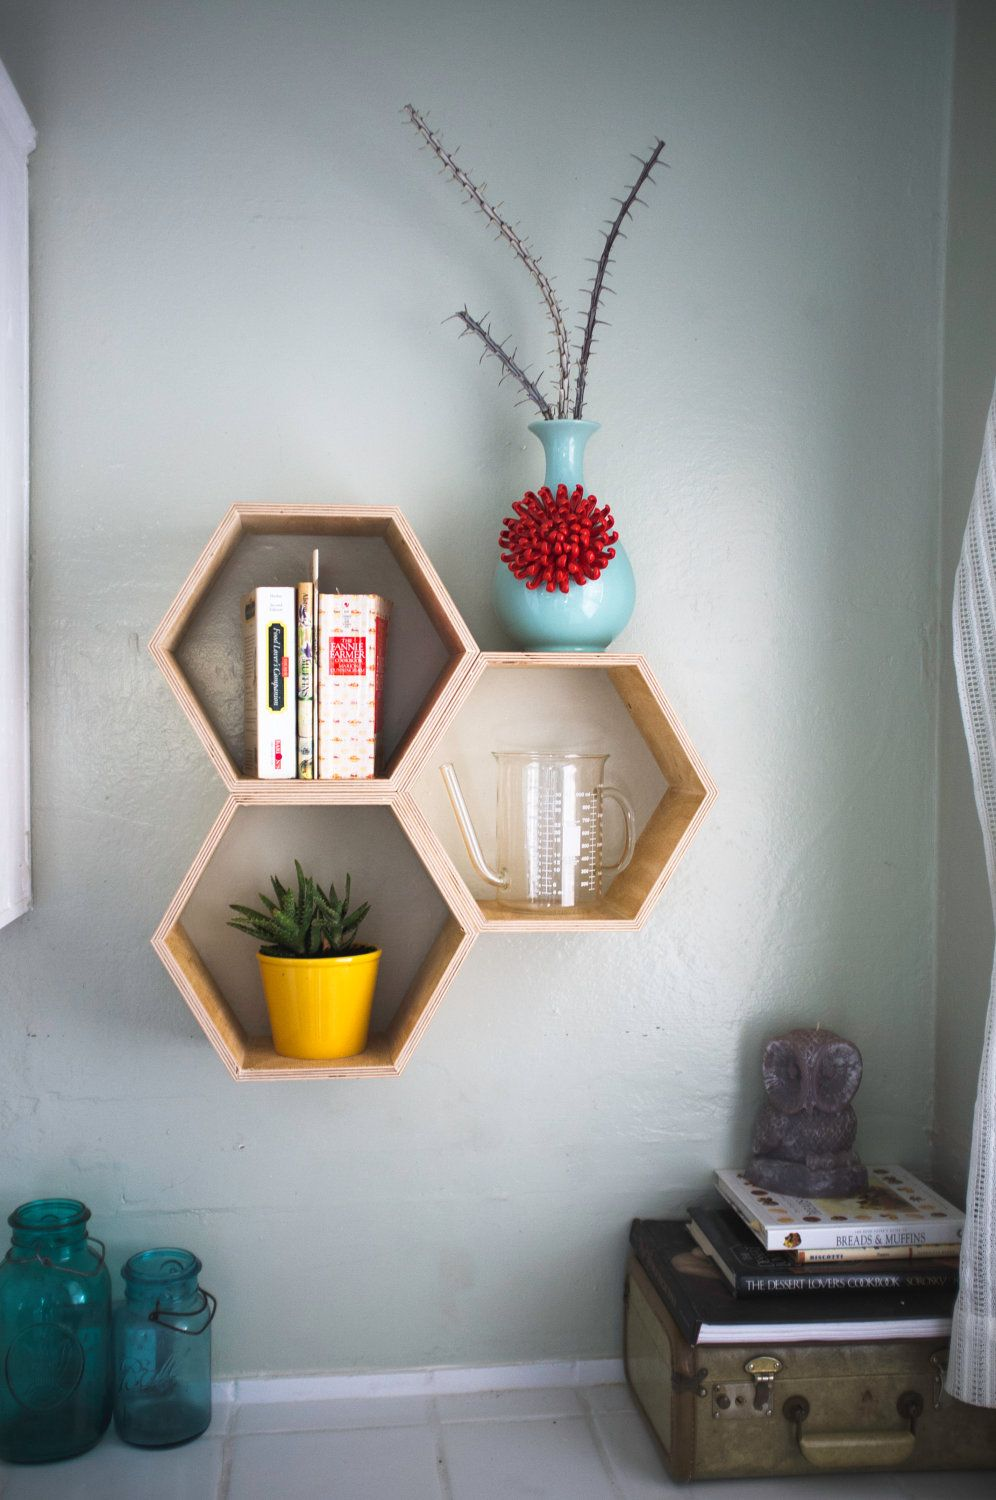 WALLS - Floating shelves in interesting groupings or shapes like ...